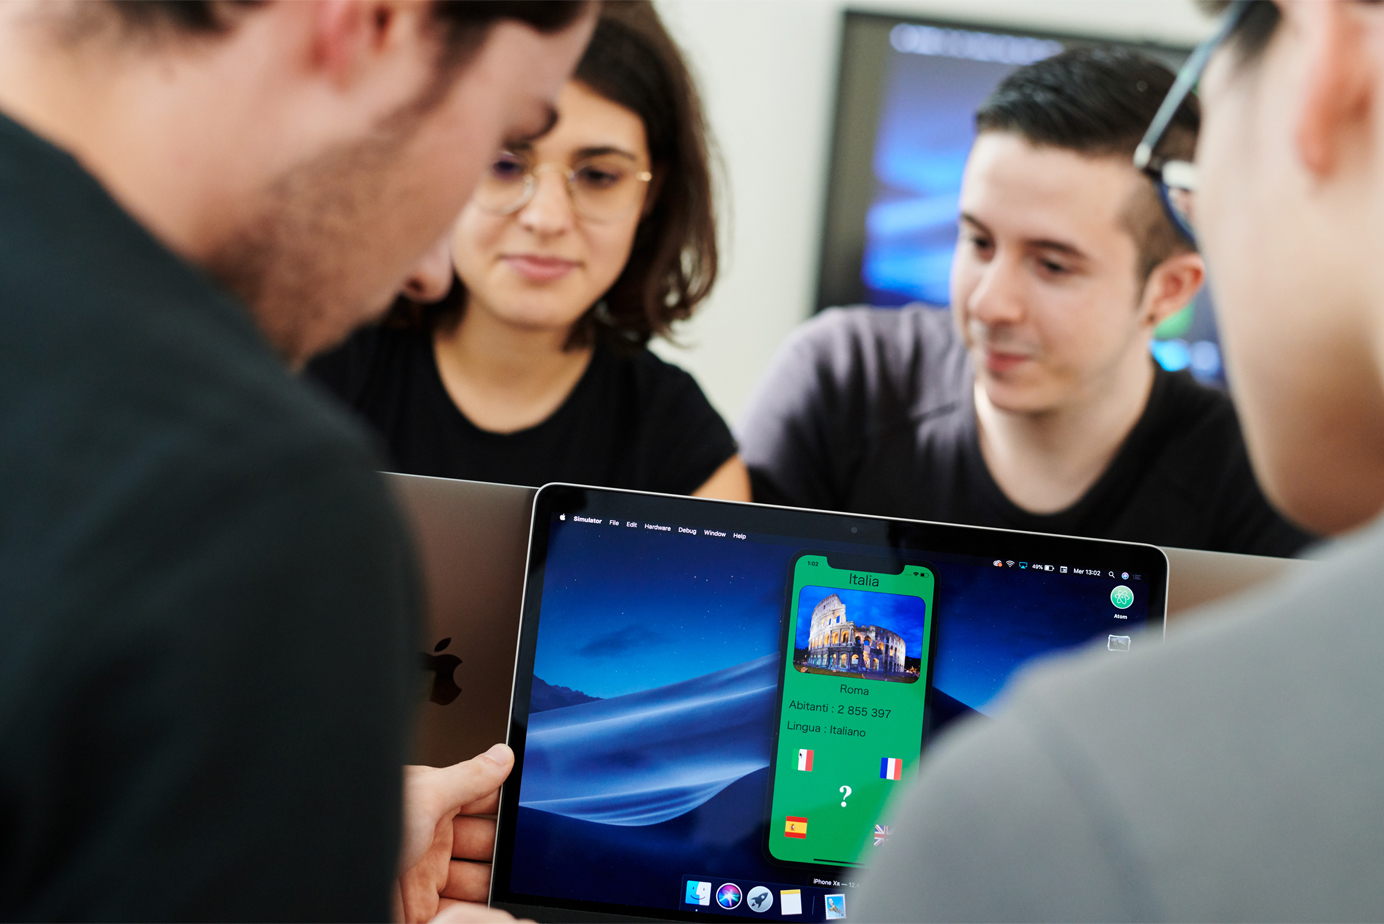 Apple's Swift to be Taught to Students of All Ages Across Europe During EU Code Week